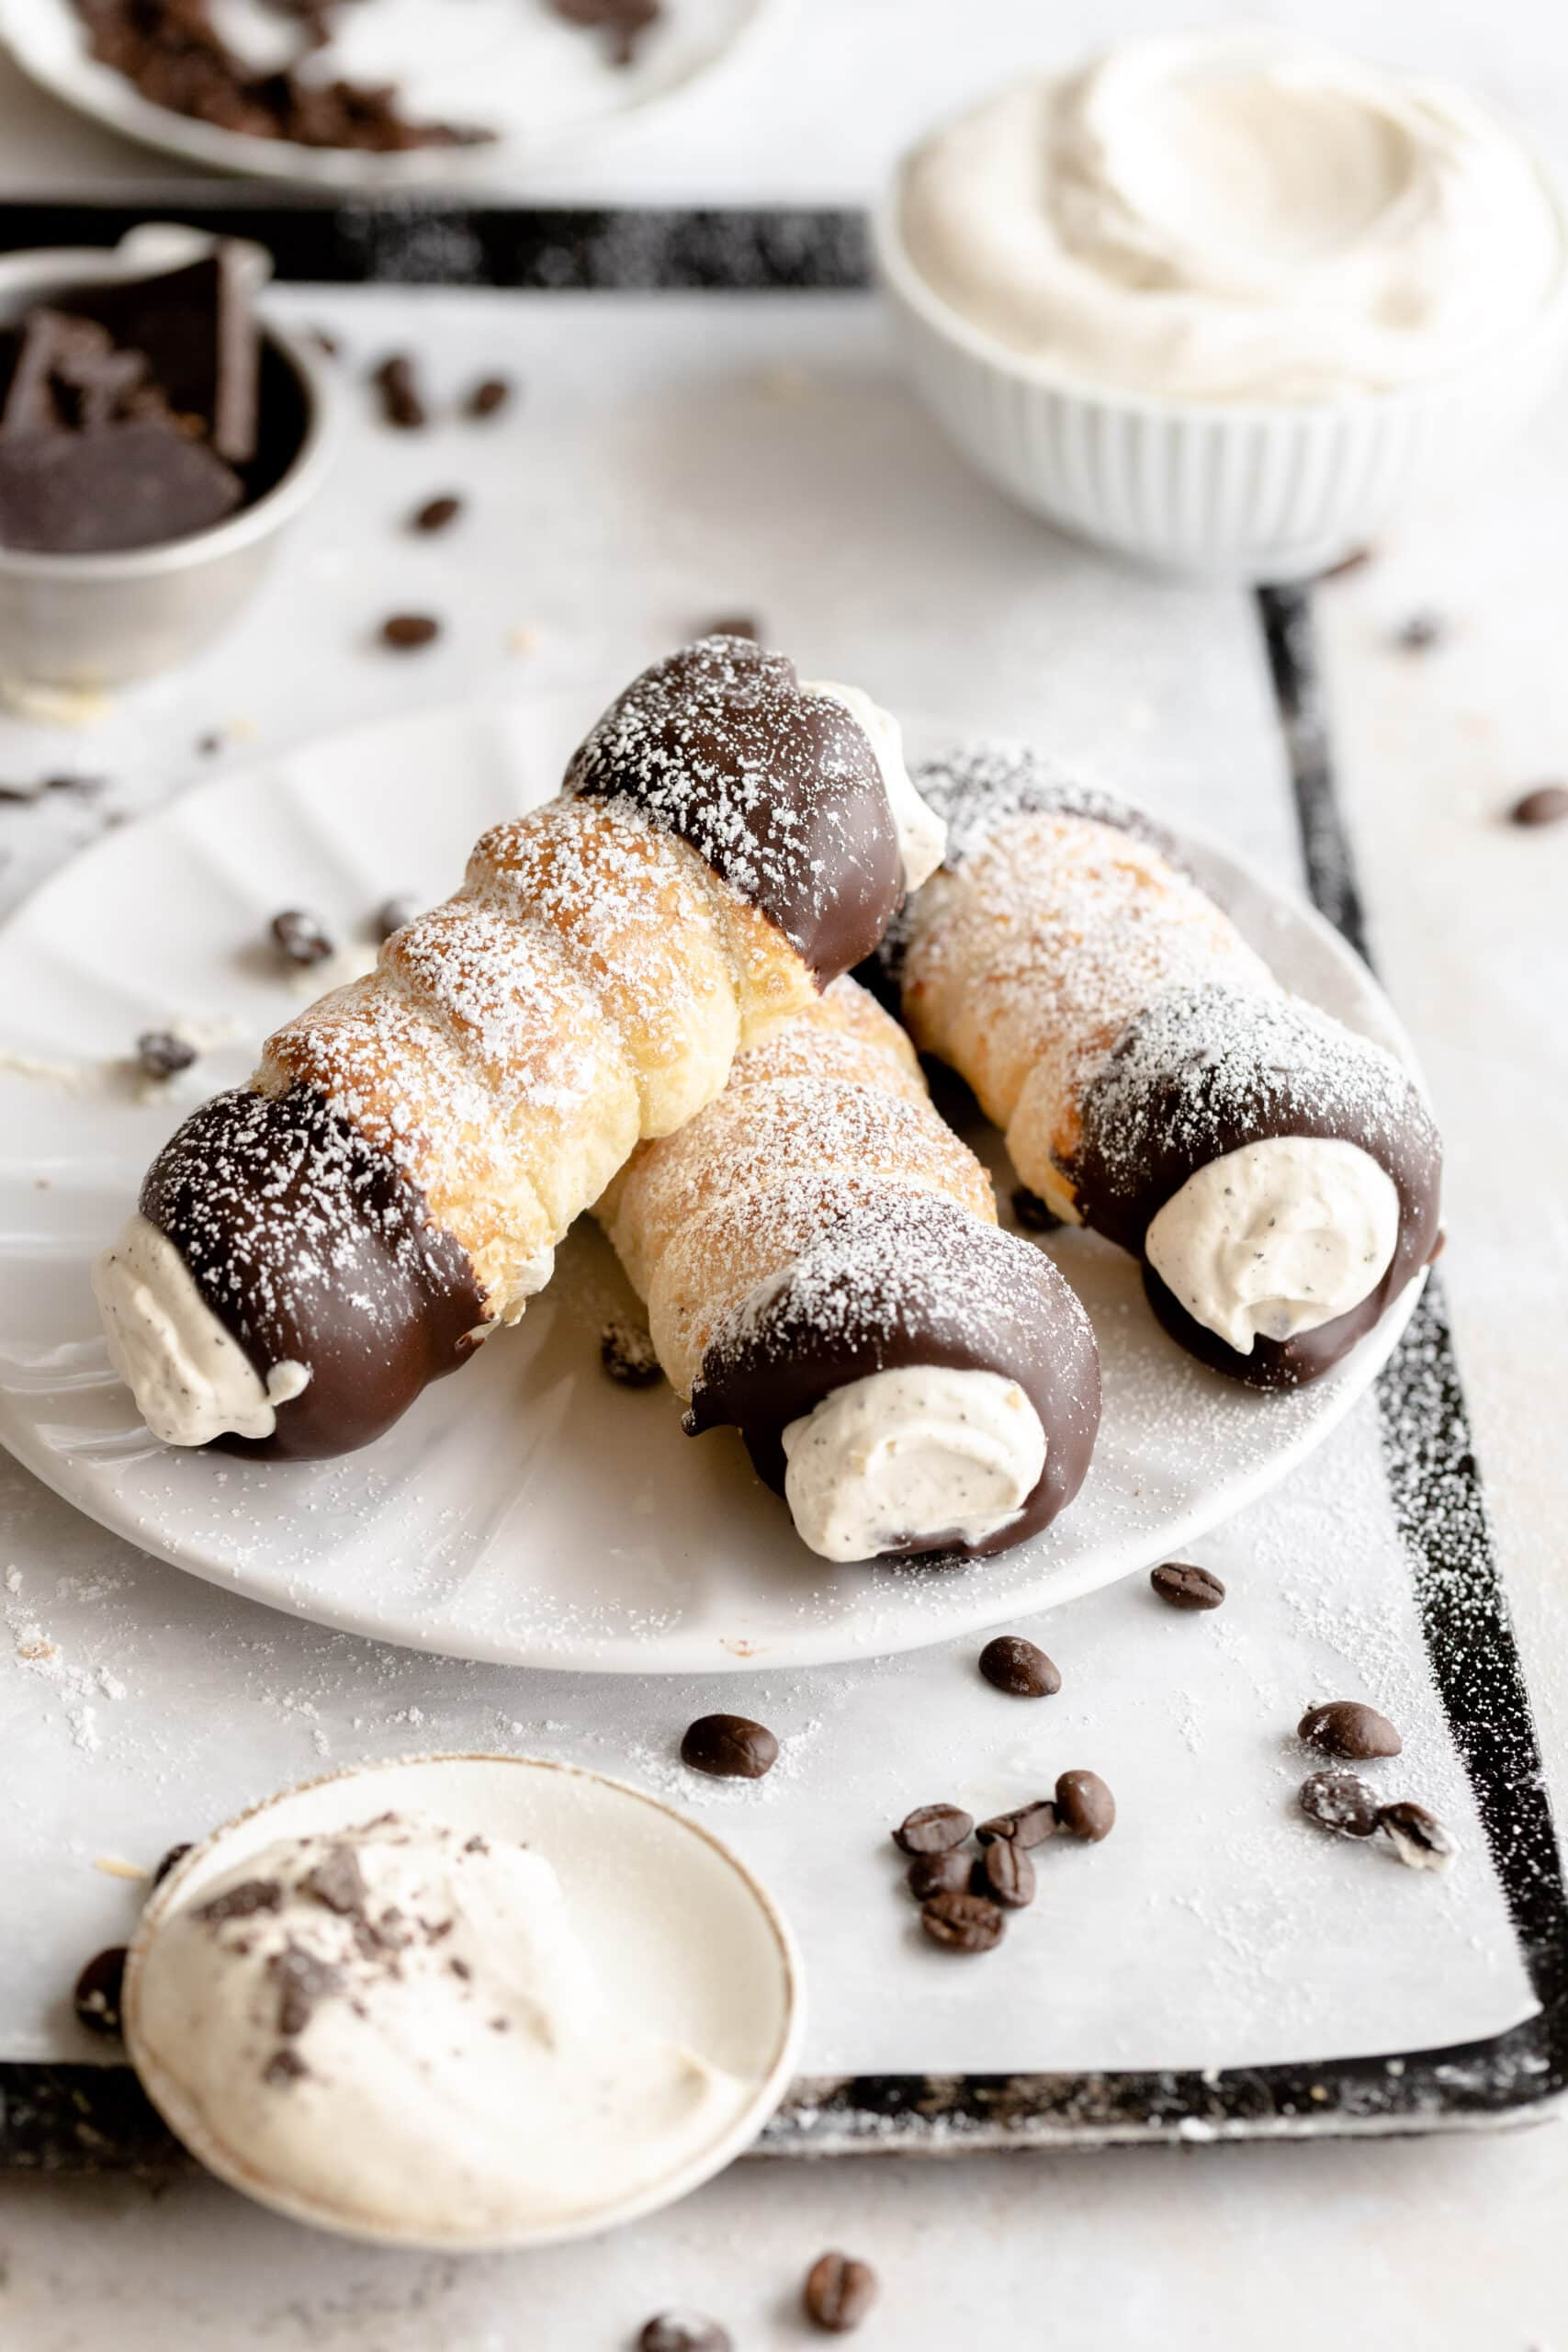 Three schaumrolle dusted with powdered sugar laid out on a white plate.